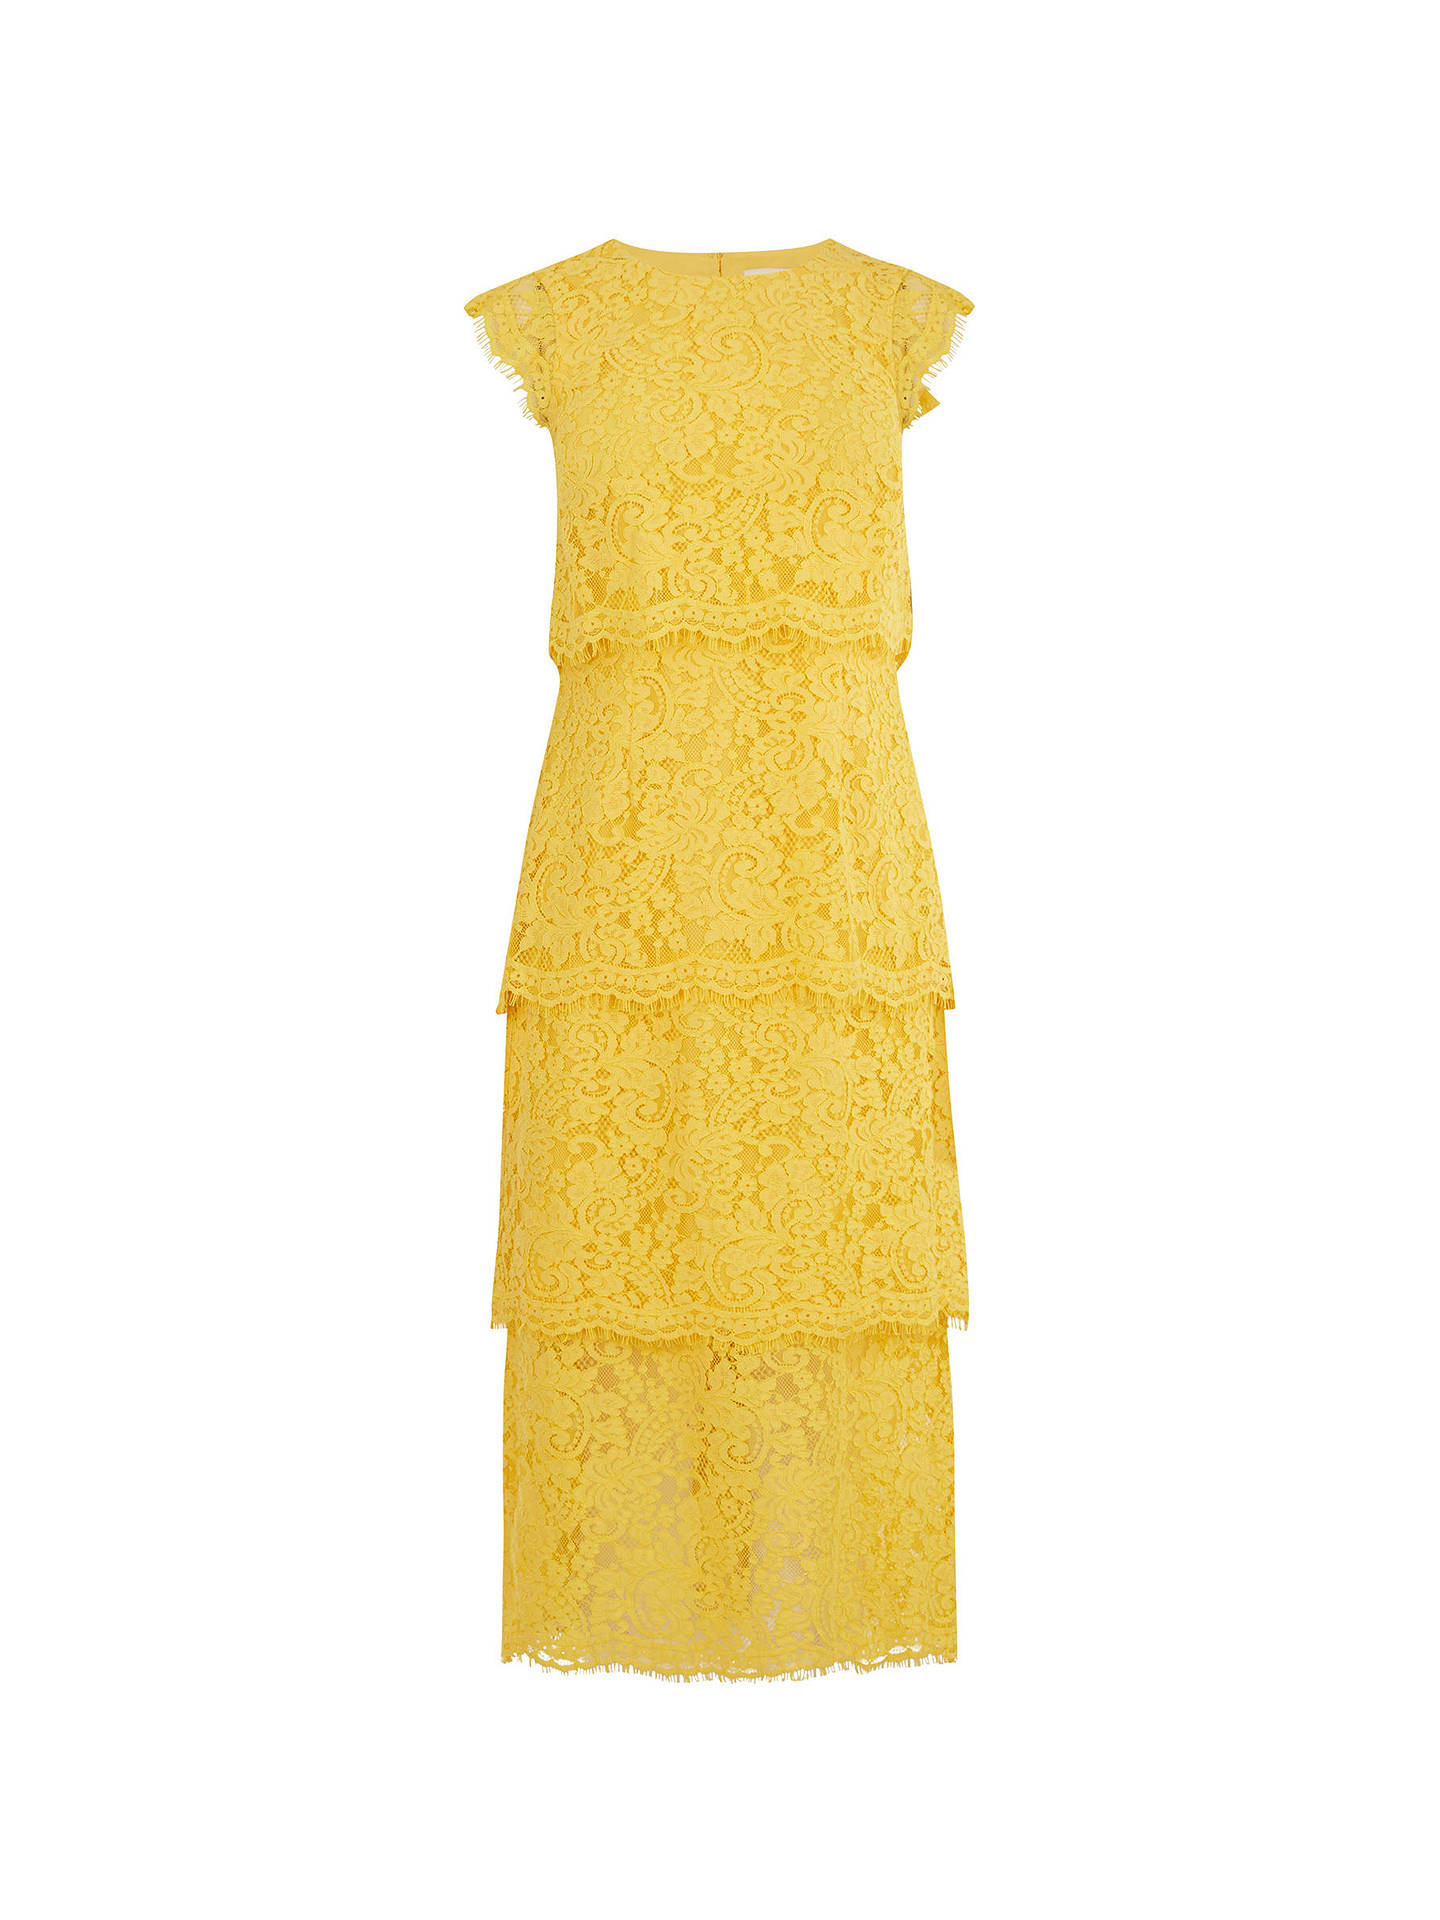 BuyWarehouse Tiered Lace Dress, Yellow, 14 Online at johnlewis.com